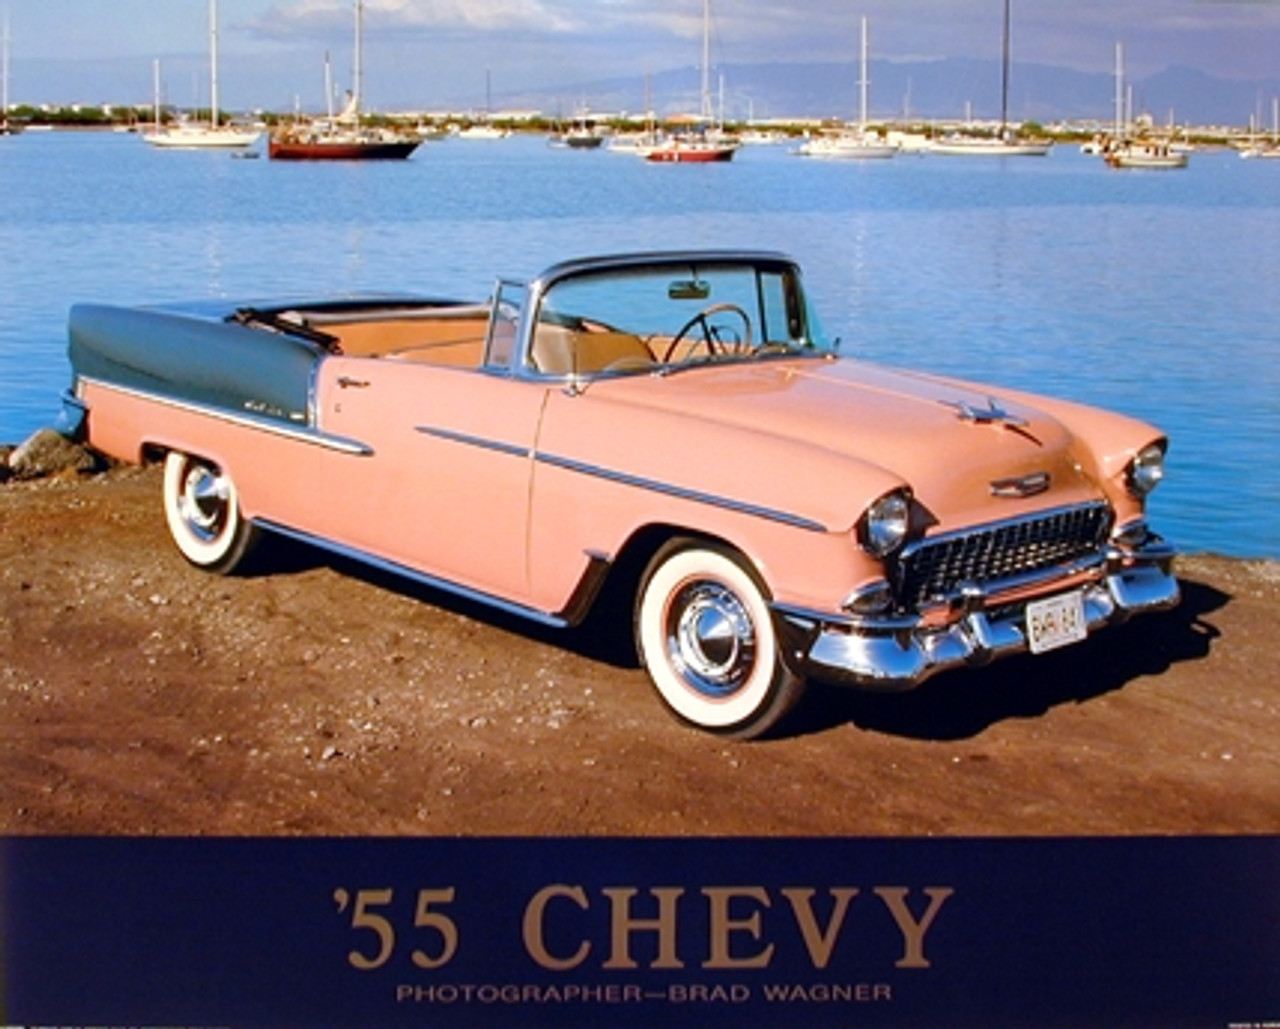 1955 Chevy Bel Air Convertible Classic Vintage Car Wall Decor Art Print Poster 16x20 Impact Posters Gallery